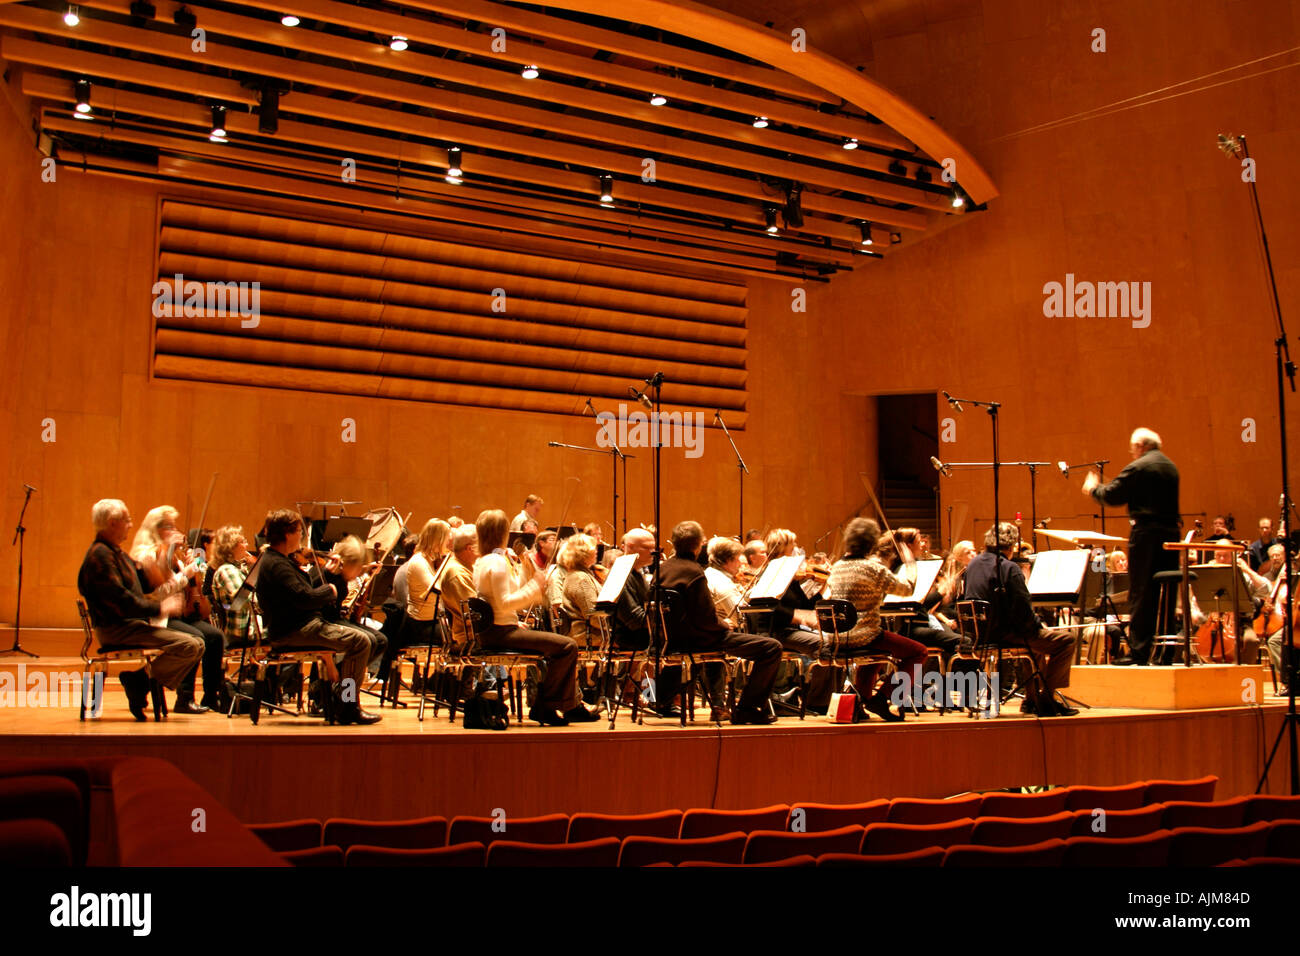 Neeme Jarvi and orchestra gothenburg symphony orchestra GSO classical music performance rehearsal concert concert hall Gothenbu - Stock Image